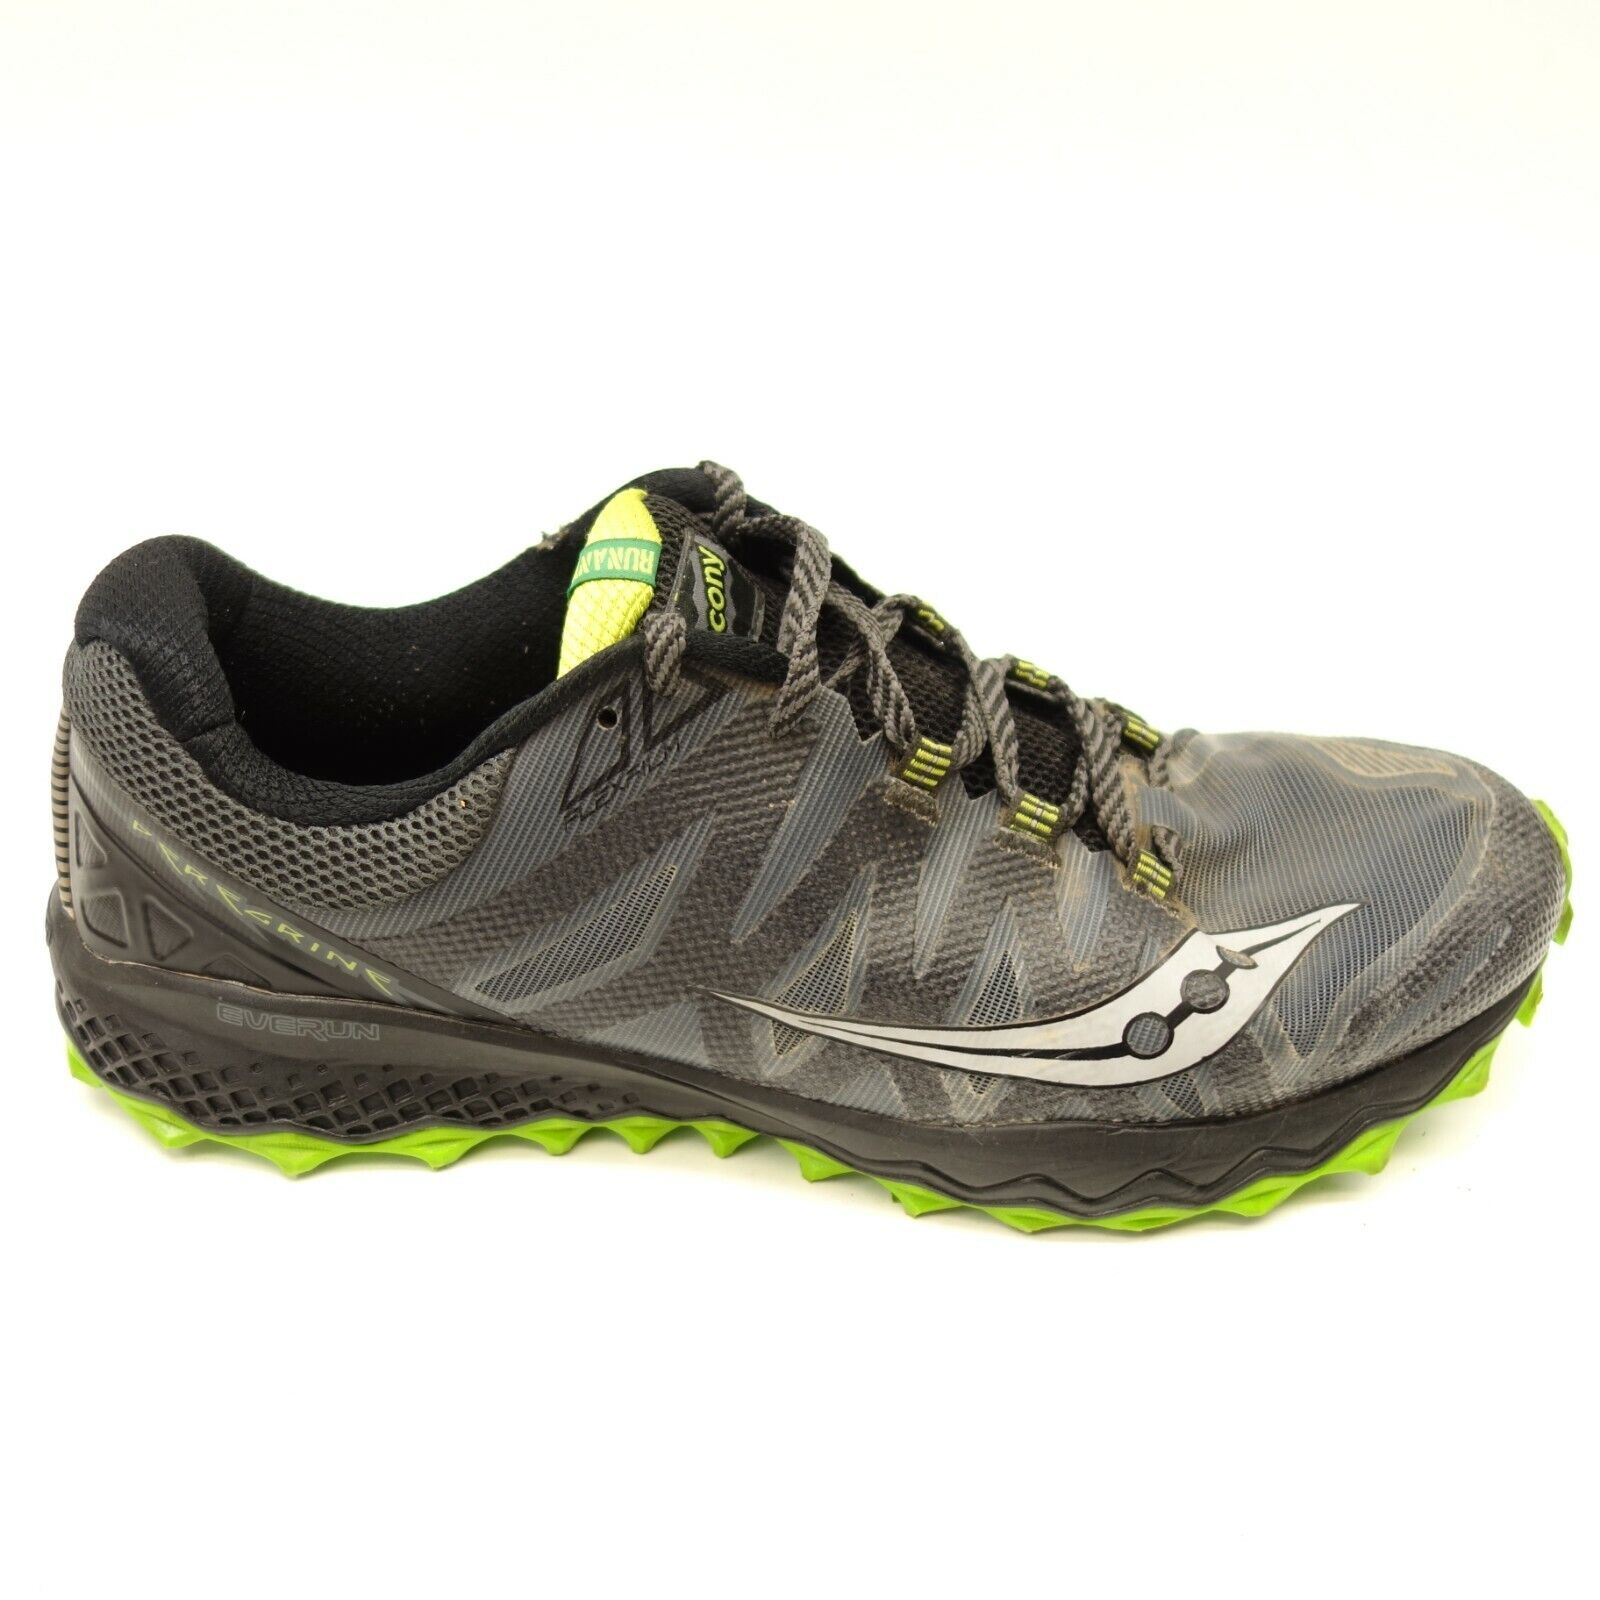 Saucony Mens Peregrine Everun Mesh Athletic Support Terrain Running shoes 12